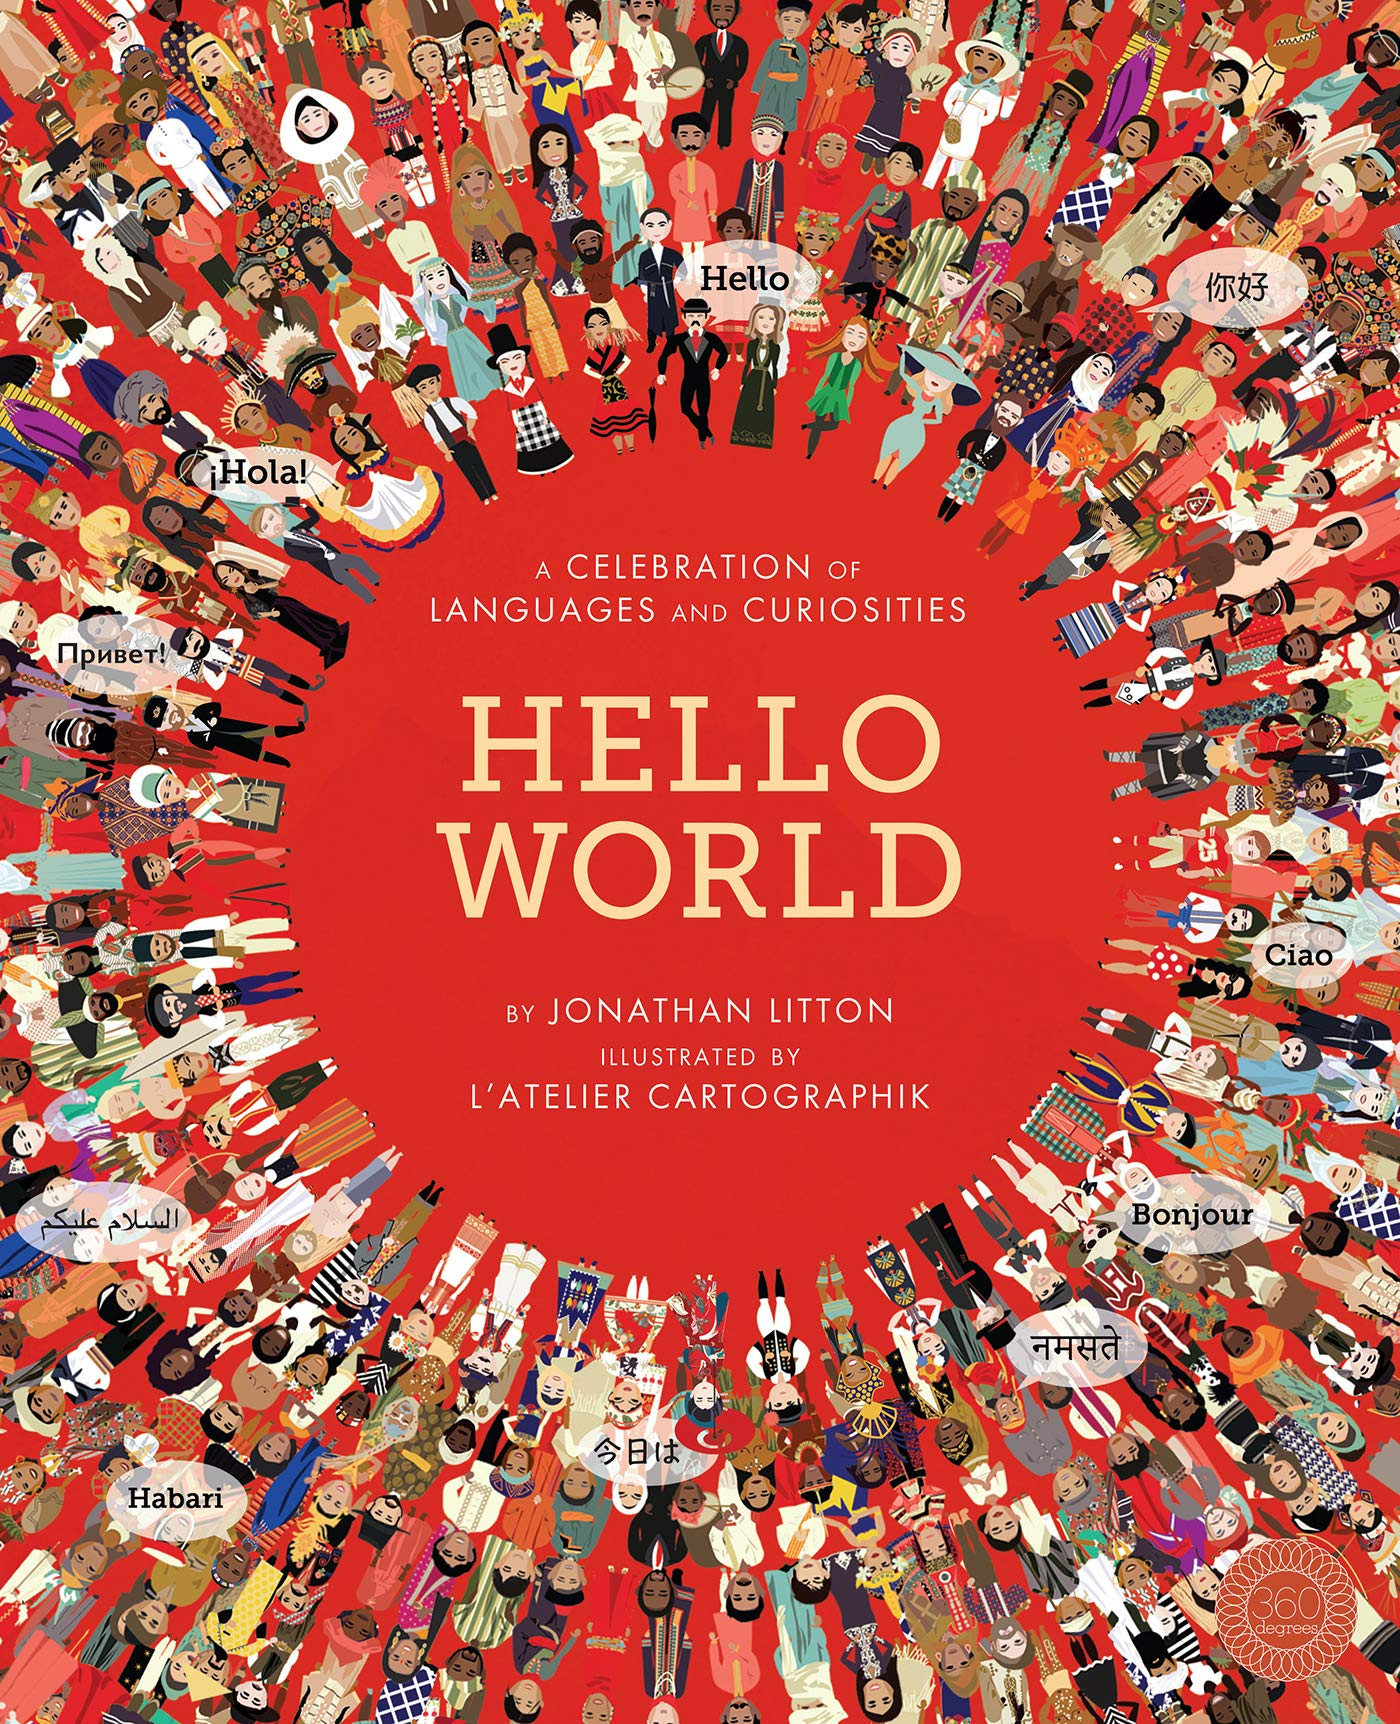 Hello World: A Celebration of Languages & Curiosities